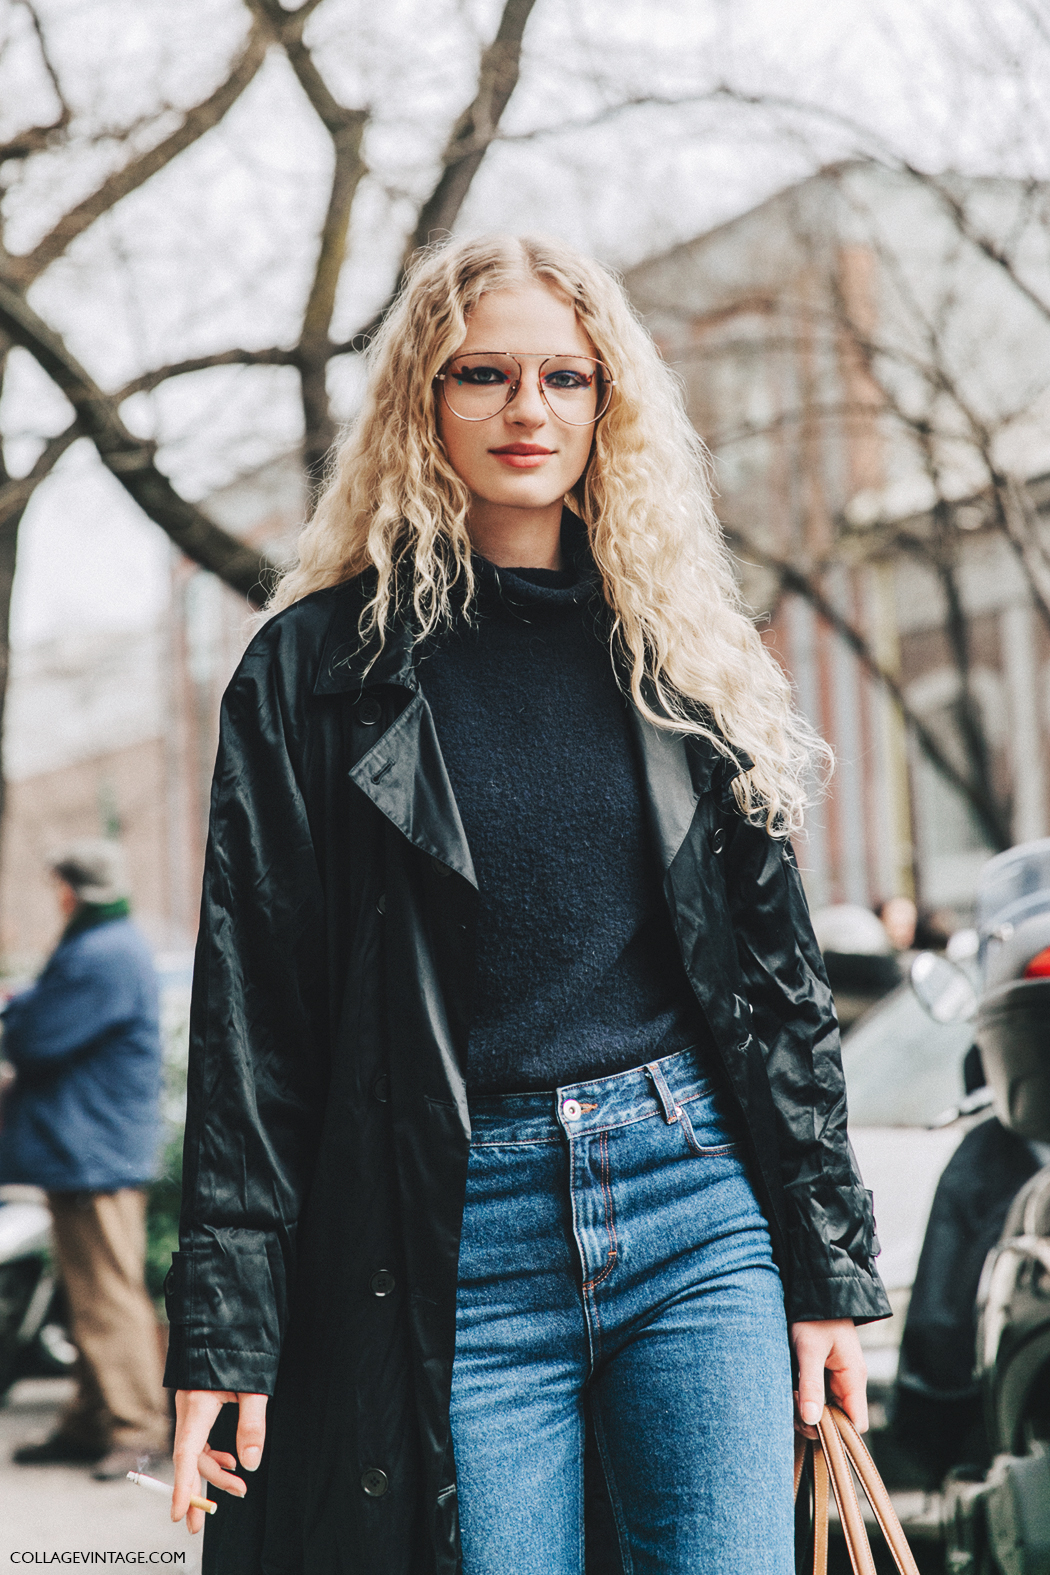 Milan_Fashion_Week_Fall_16-MFW-Street_Style-Collage_Vintage-Frederikke_Sofie-Celine-Model-4